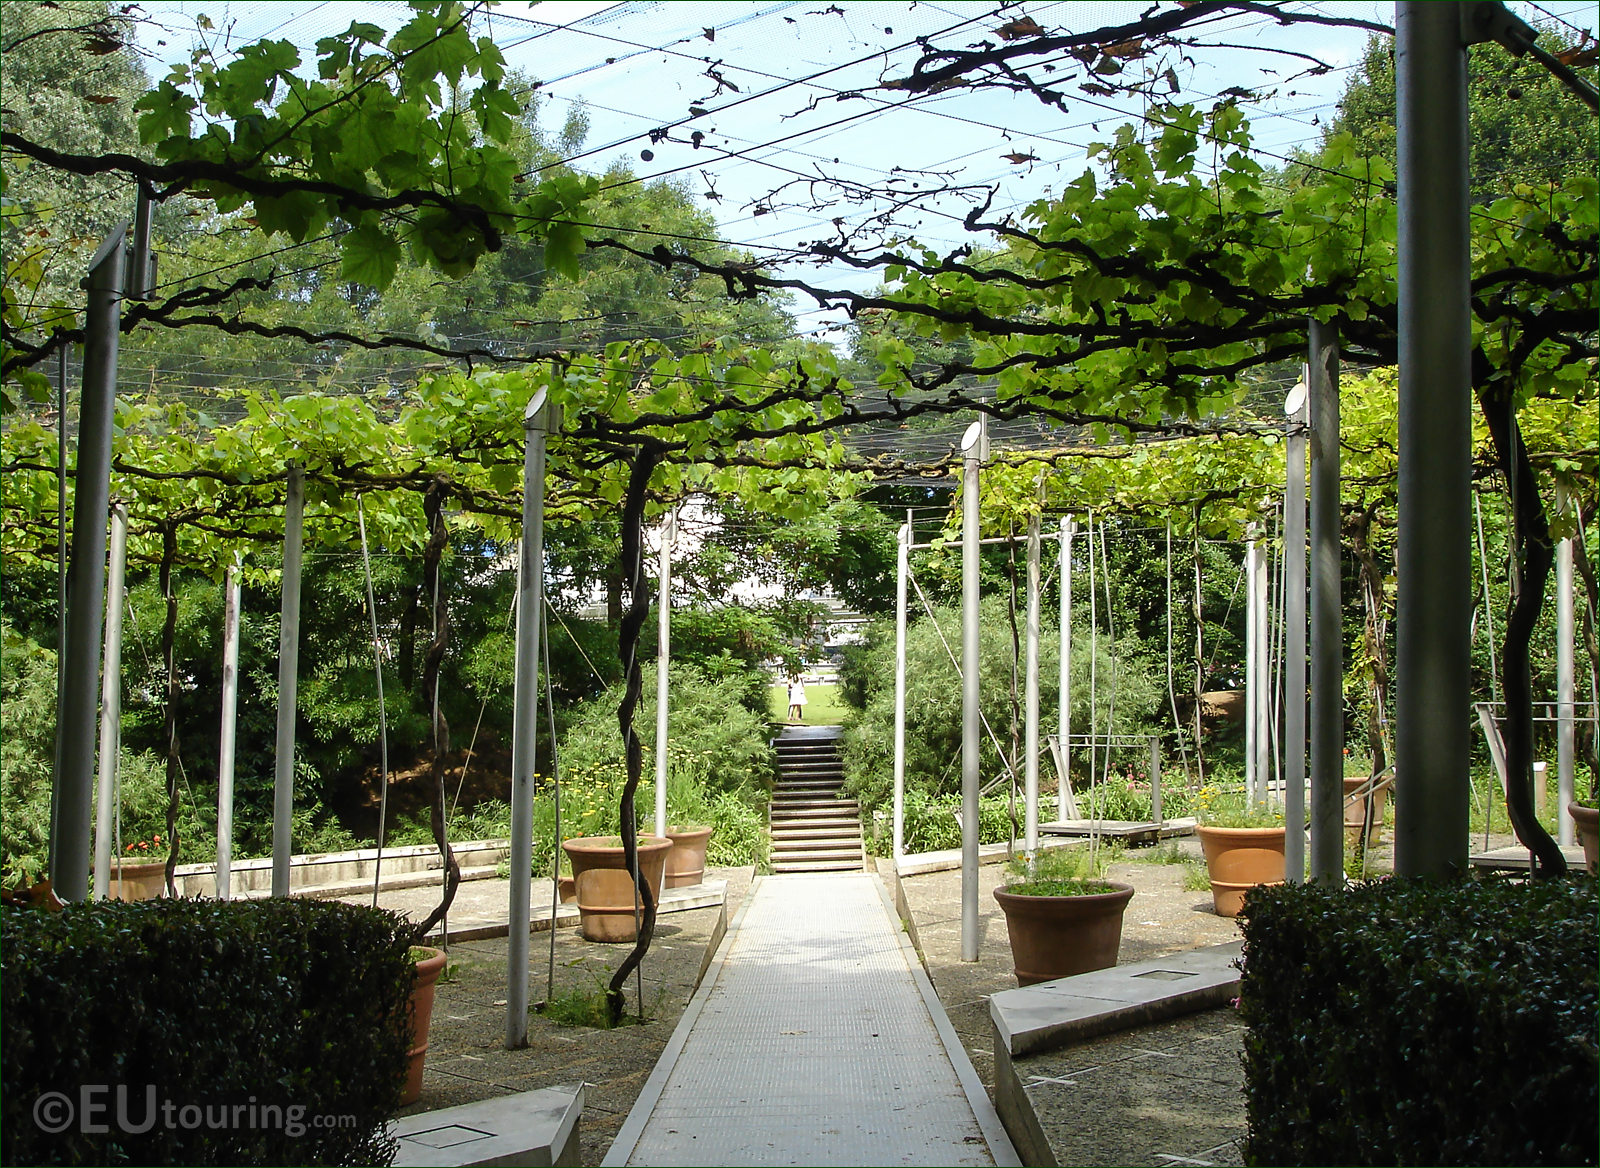 Hd photos of jardin de la treille vineyard inside parc de for Parc et jardin